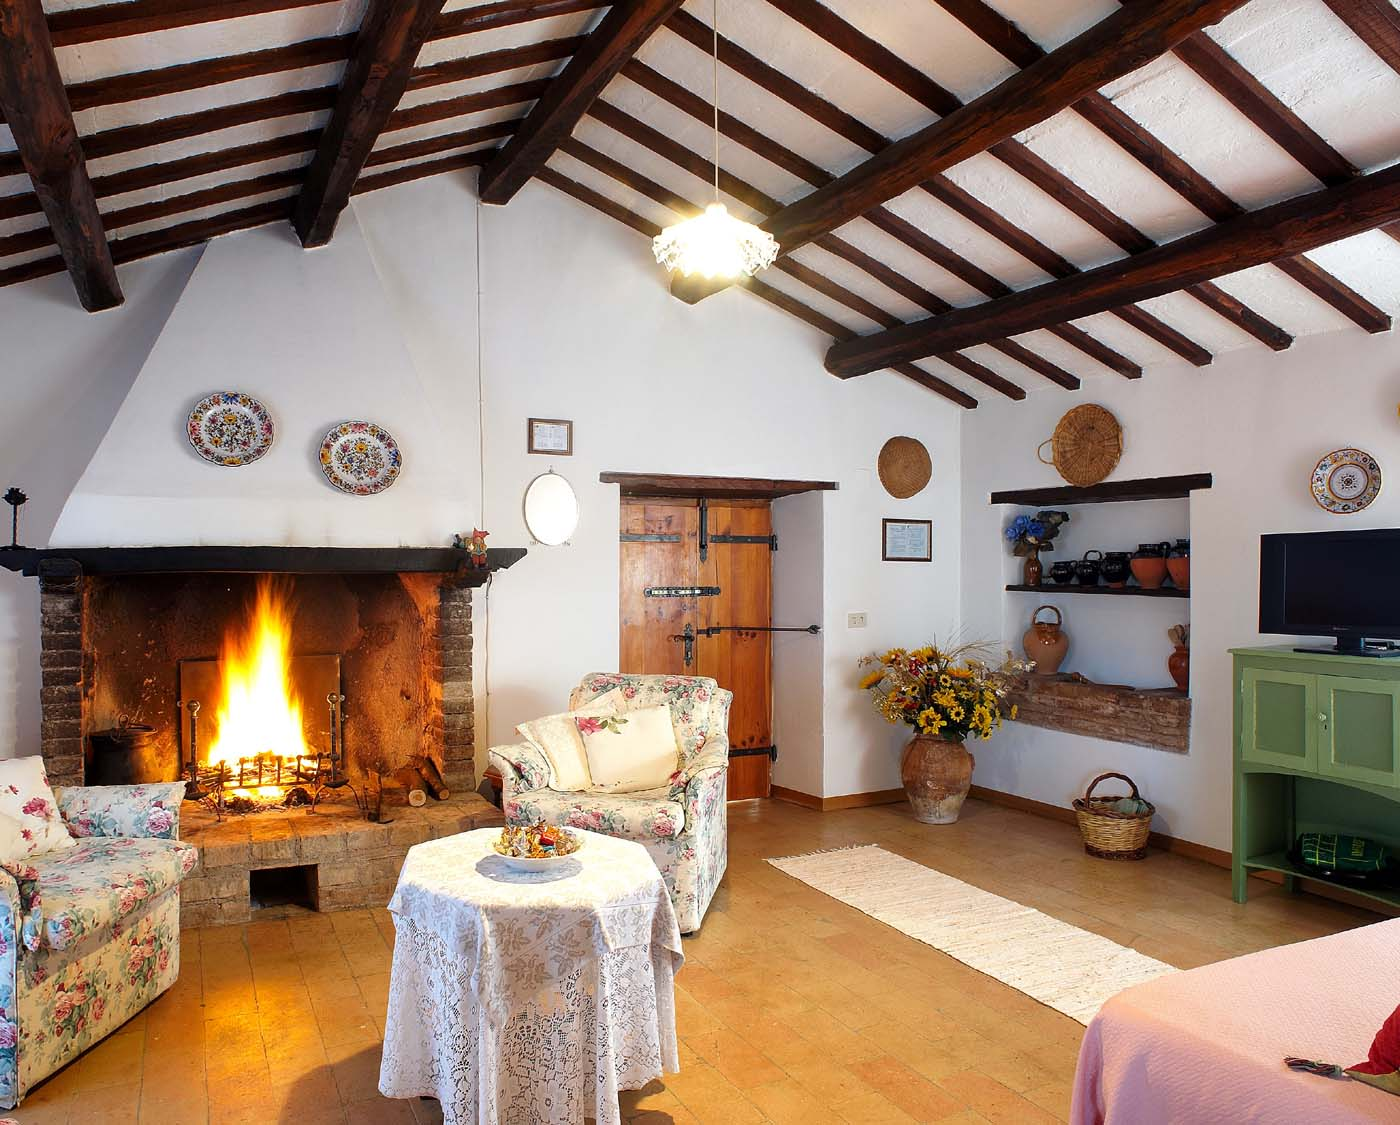 Holiday cottage for rent in Umbria